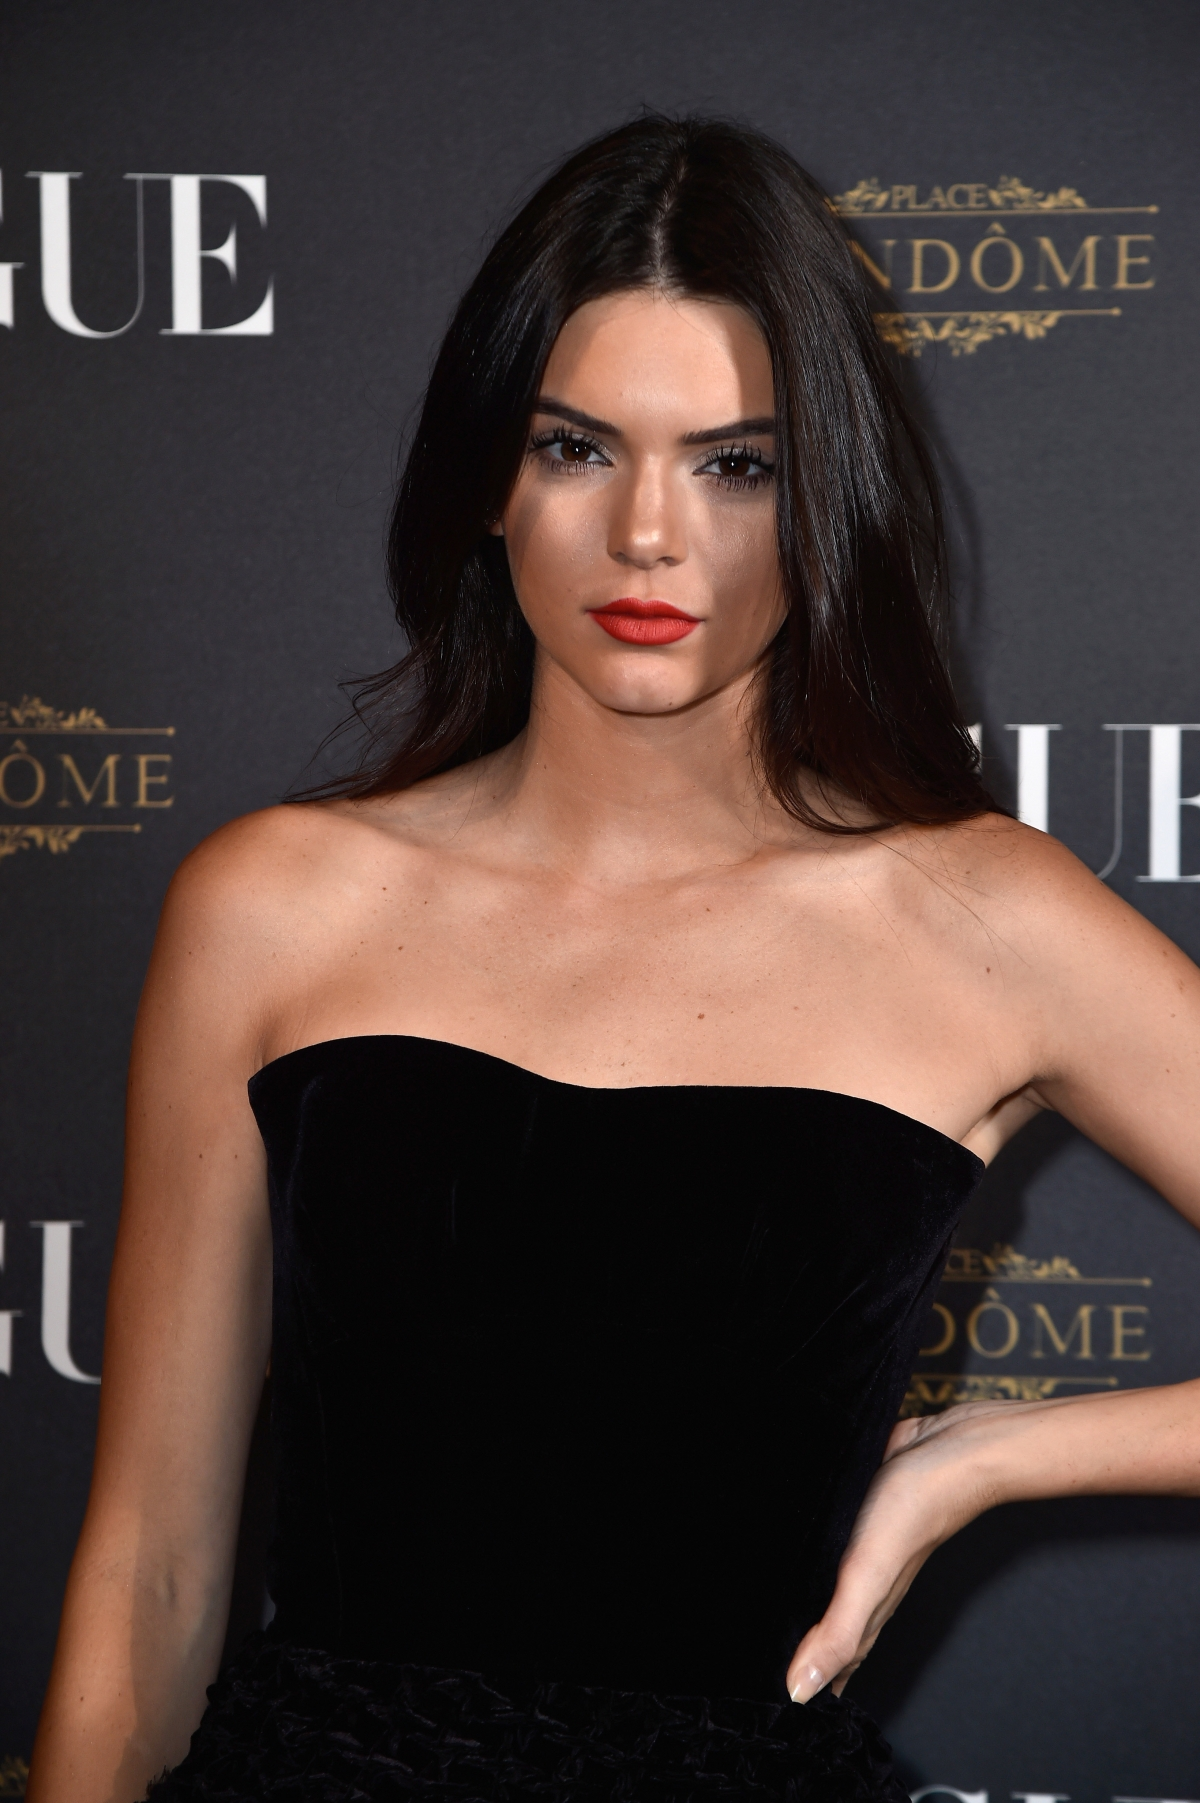 Kendall Jenner Dating DAngelo Russell Harry Styles Ex Girlfriend Ready To Fall In Love